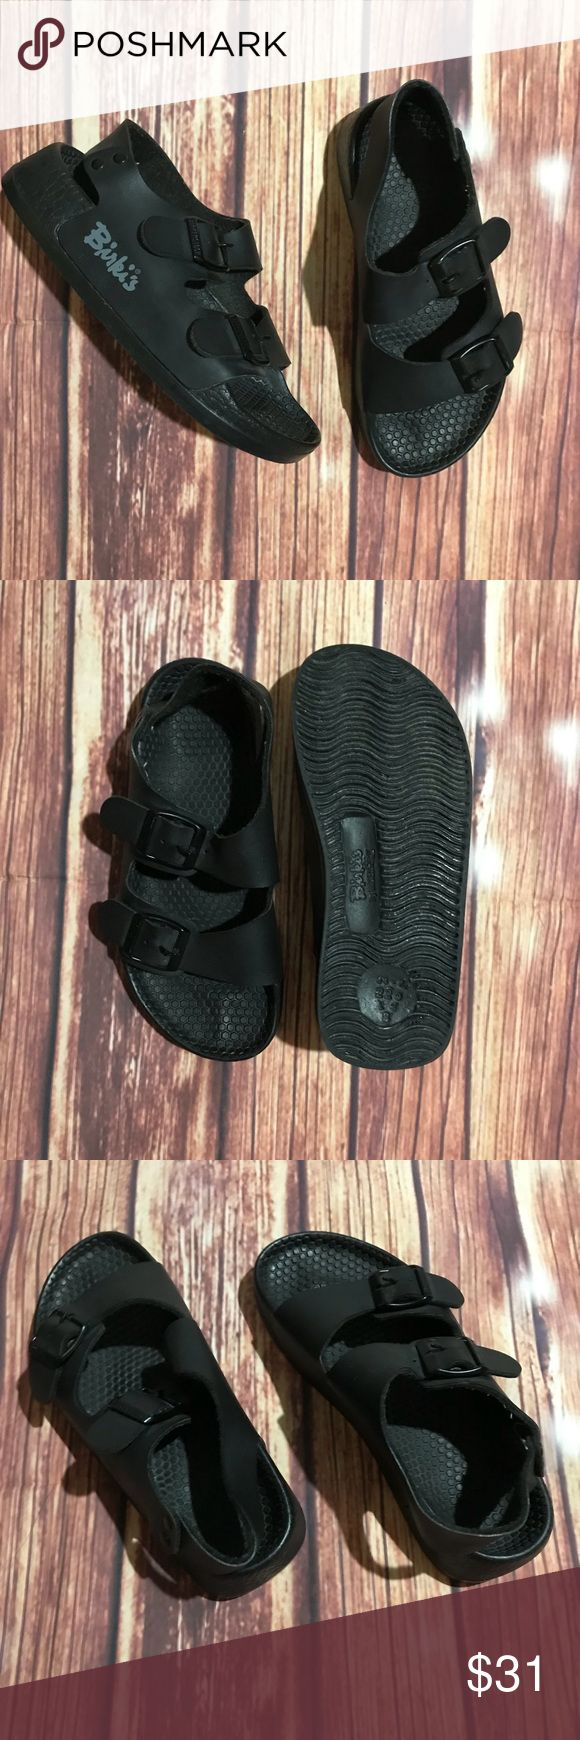 Birki's by Birkenstock water shoe. Kids water shoe strap across heel for stability. Adjustable straps. Size 34 which is a 3-3.5 in US size. Excellent condition!m, practically brand new!  Unisex. Birkenstock Shoes